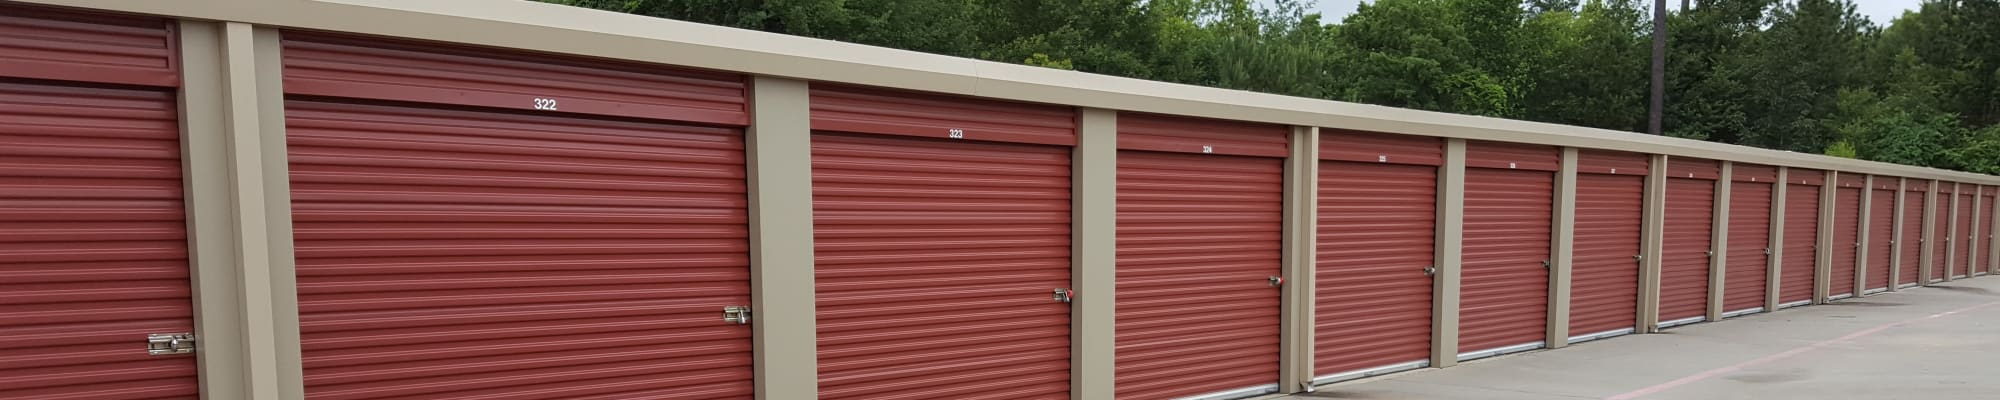 Unit size guide at Lockaway Storage in Texarkana, Texas